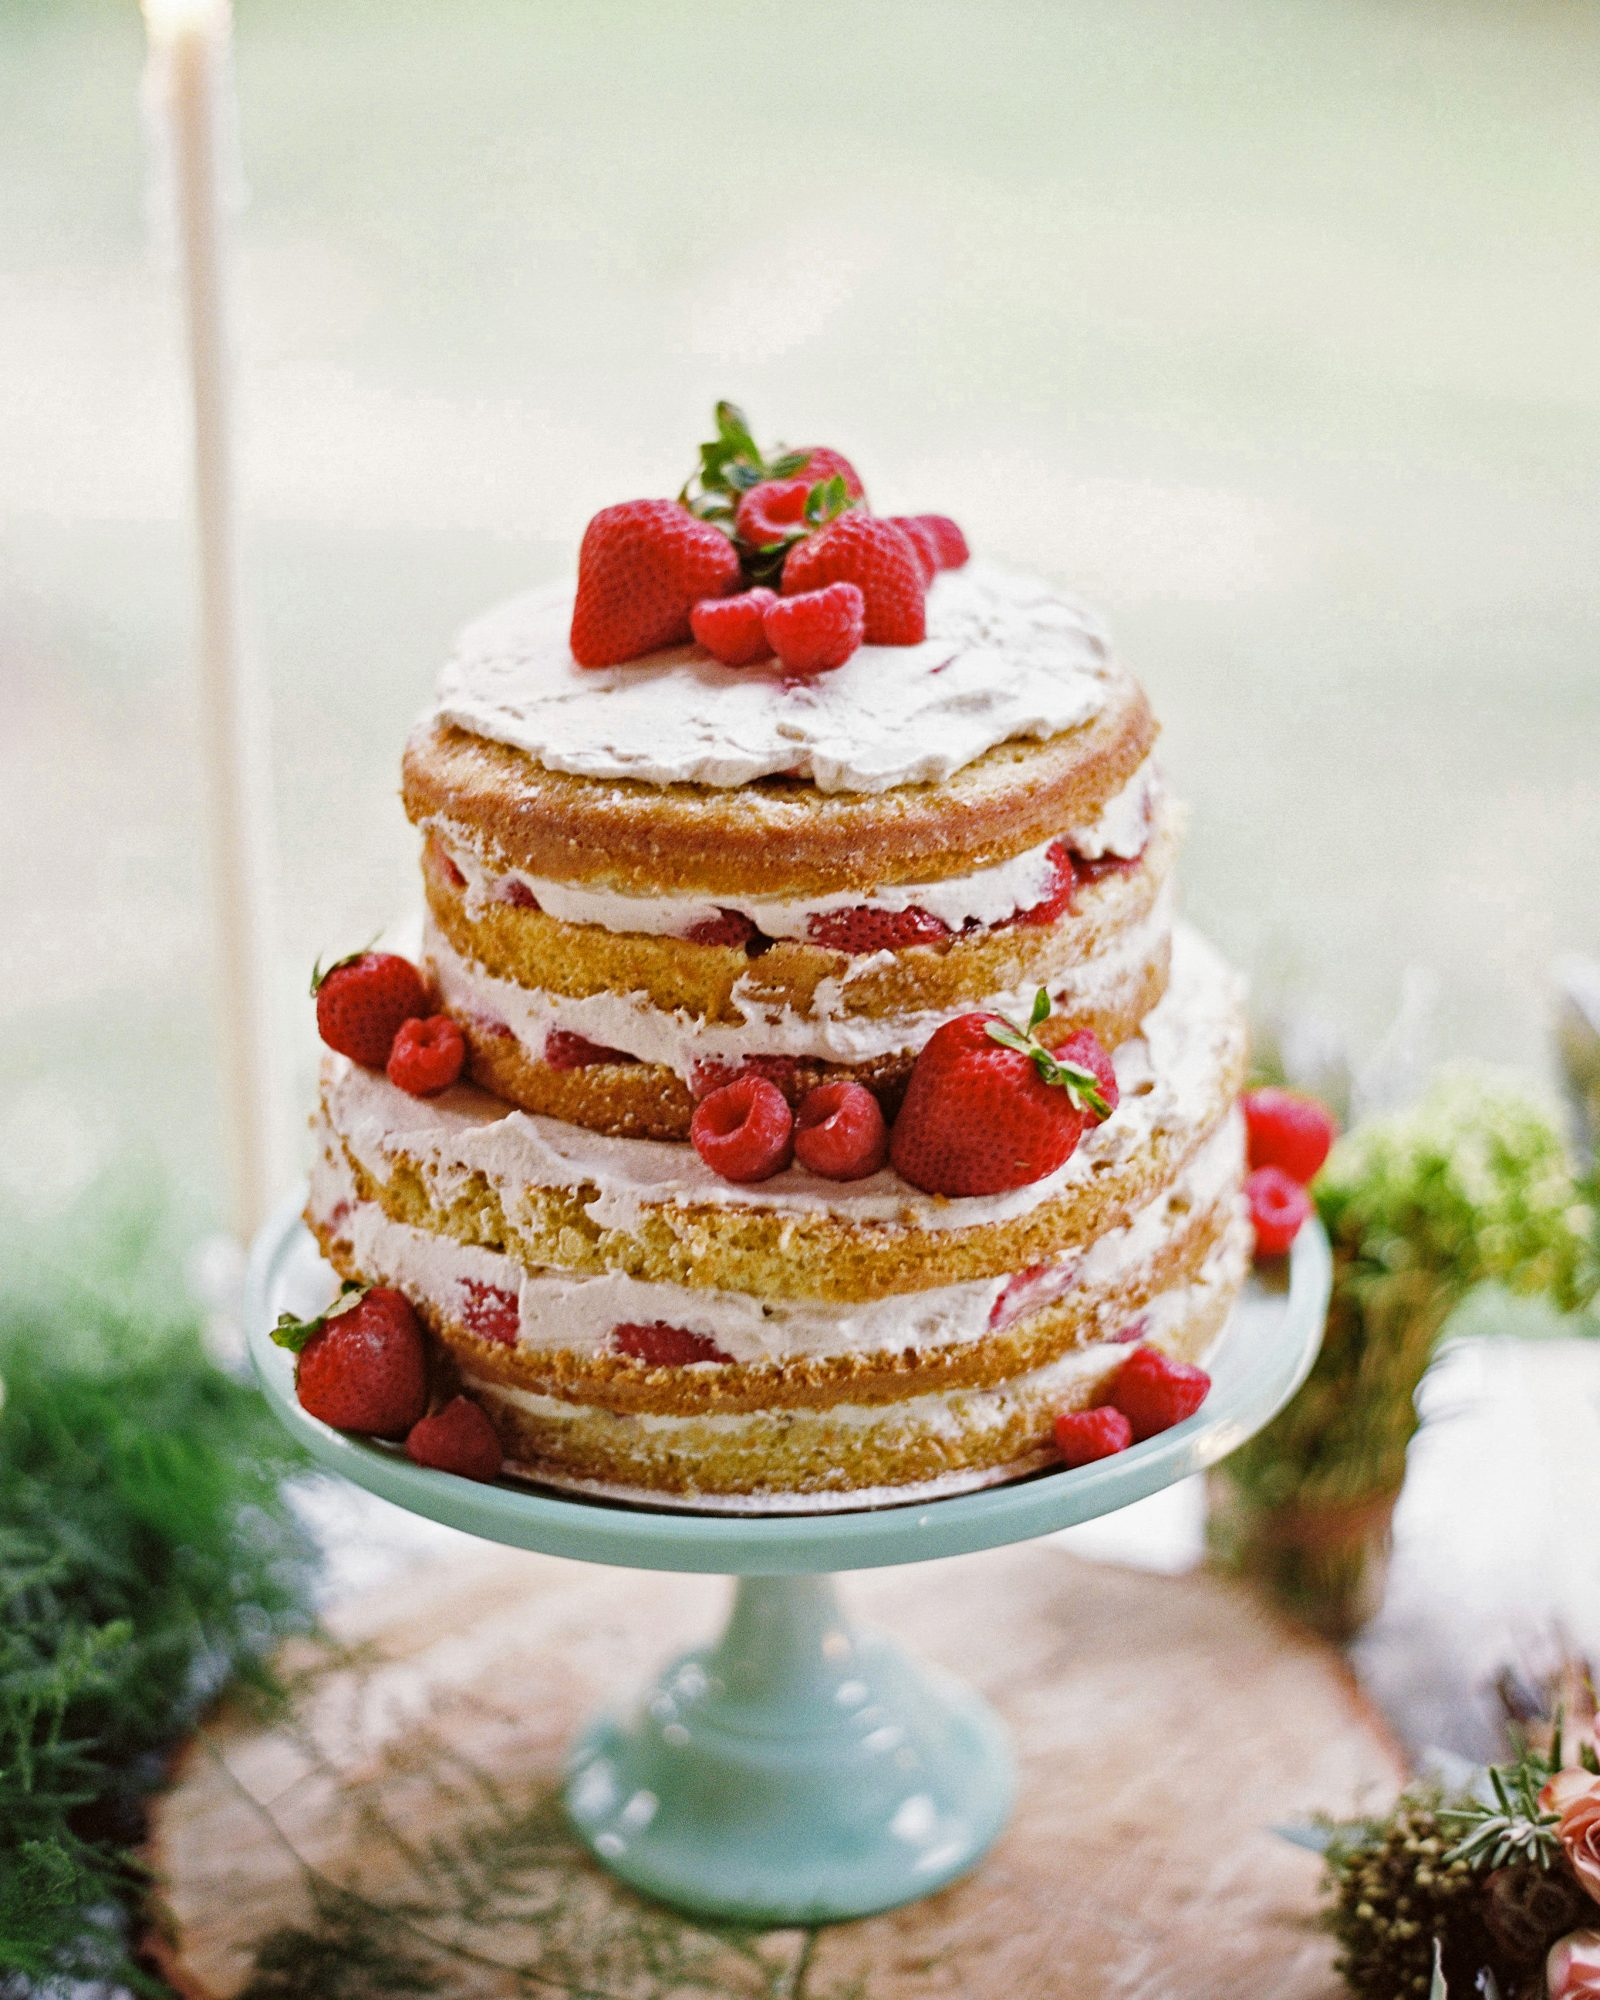 Why cover up your cake's interior when it's as pretty as this strawberry one's was?